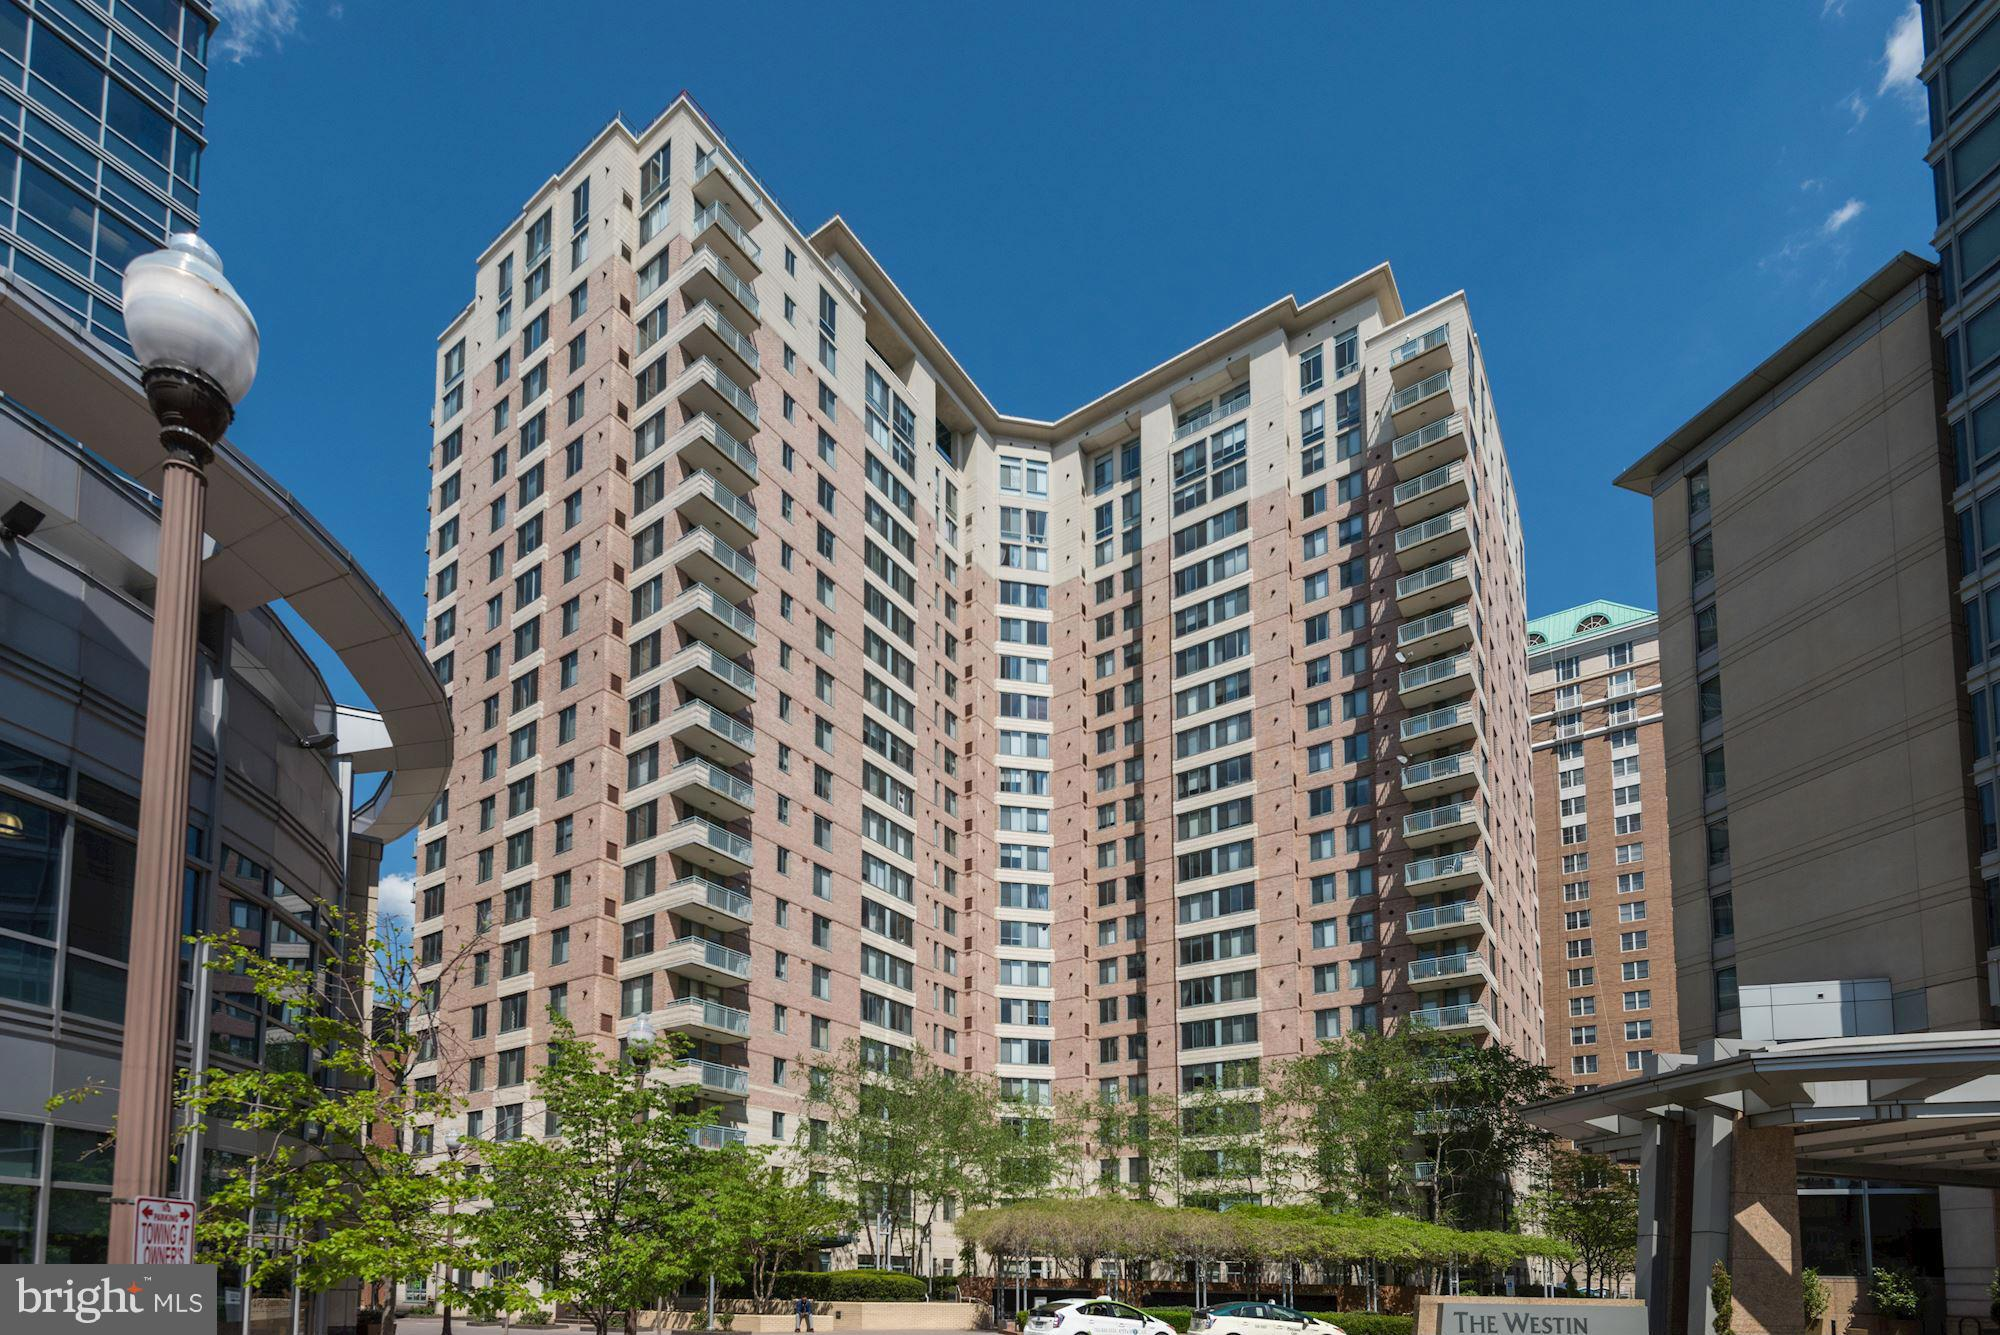 Stunning 1BR/1BA + Den condo in the Continental at Ballston w/ private balcony! Don't miss this immaculate, boutique urban retreat w/ HW floors, gourmet kitchen, gas FP + garage parking. Just steps from Ballston Metro, shops, dining + entertainment, this haven in the heart of Arlington is not to be missed! Rooftop pool, fitness center, business center, front desk concierge 24x7! OPEN SUN 1-4!